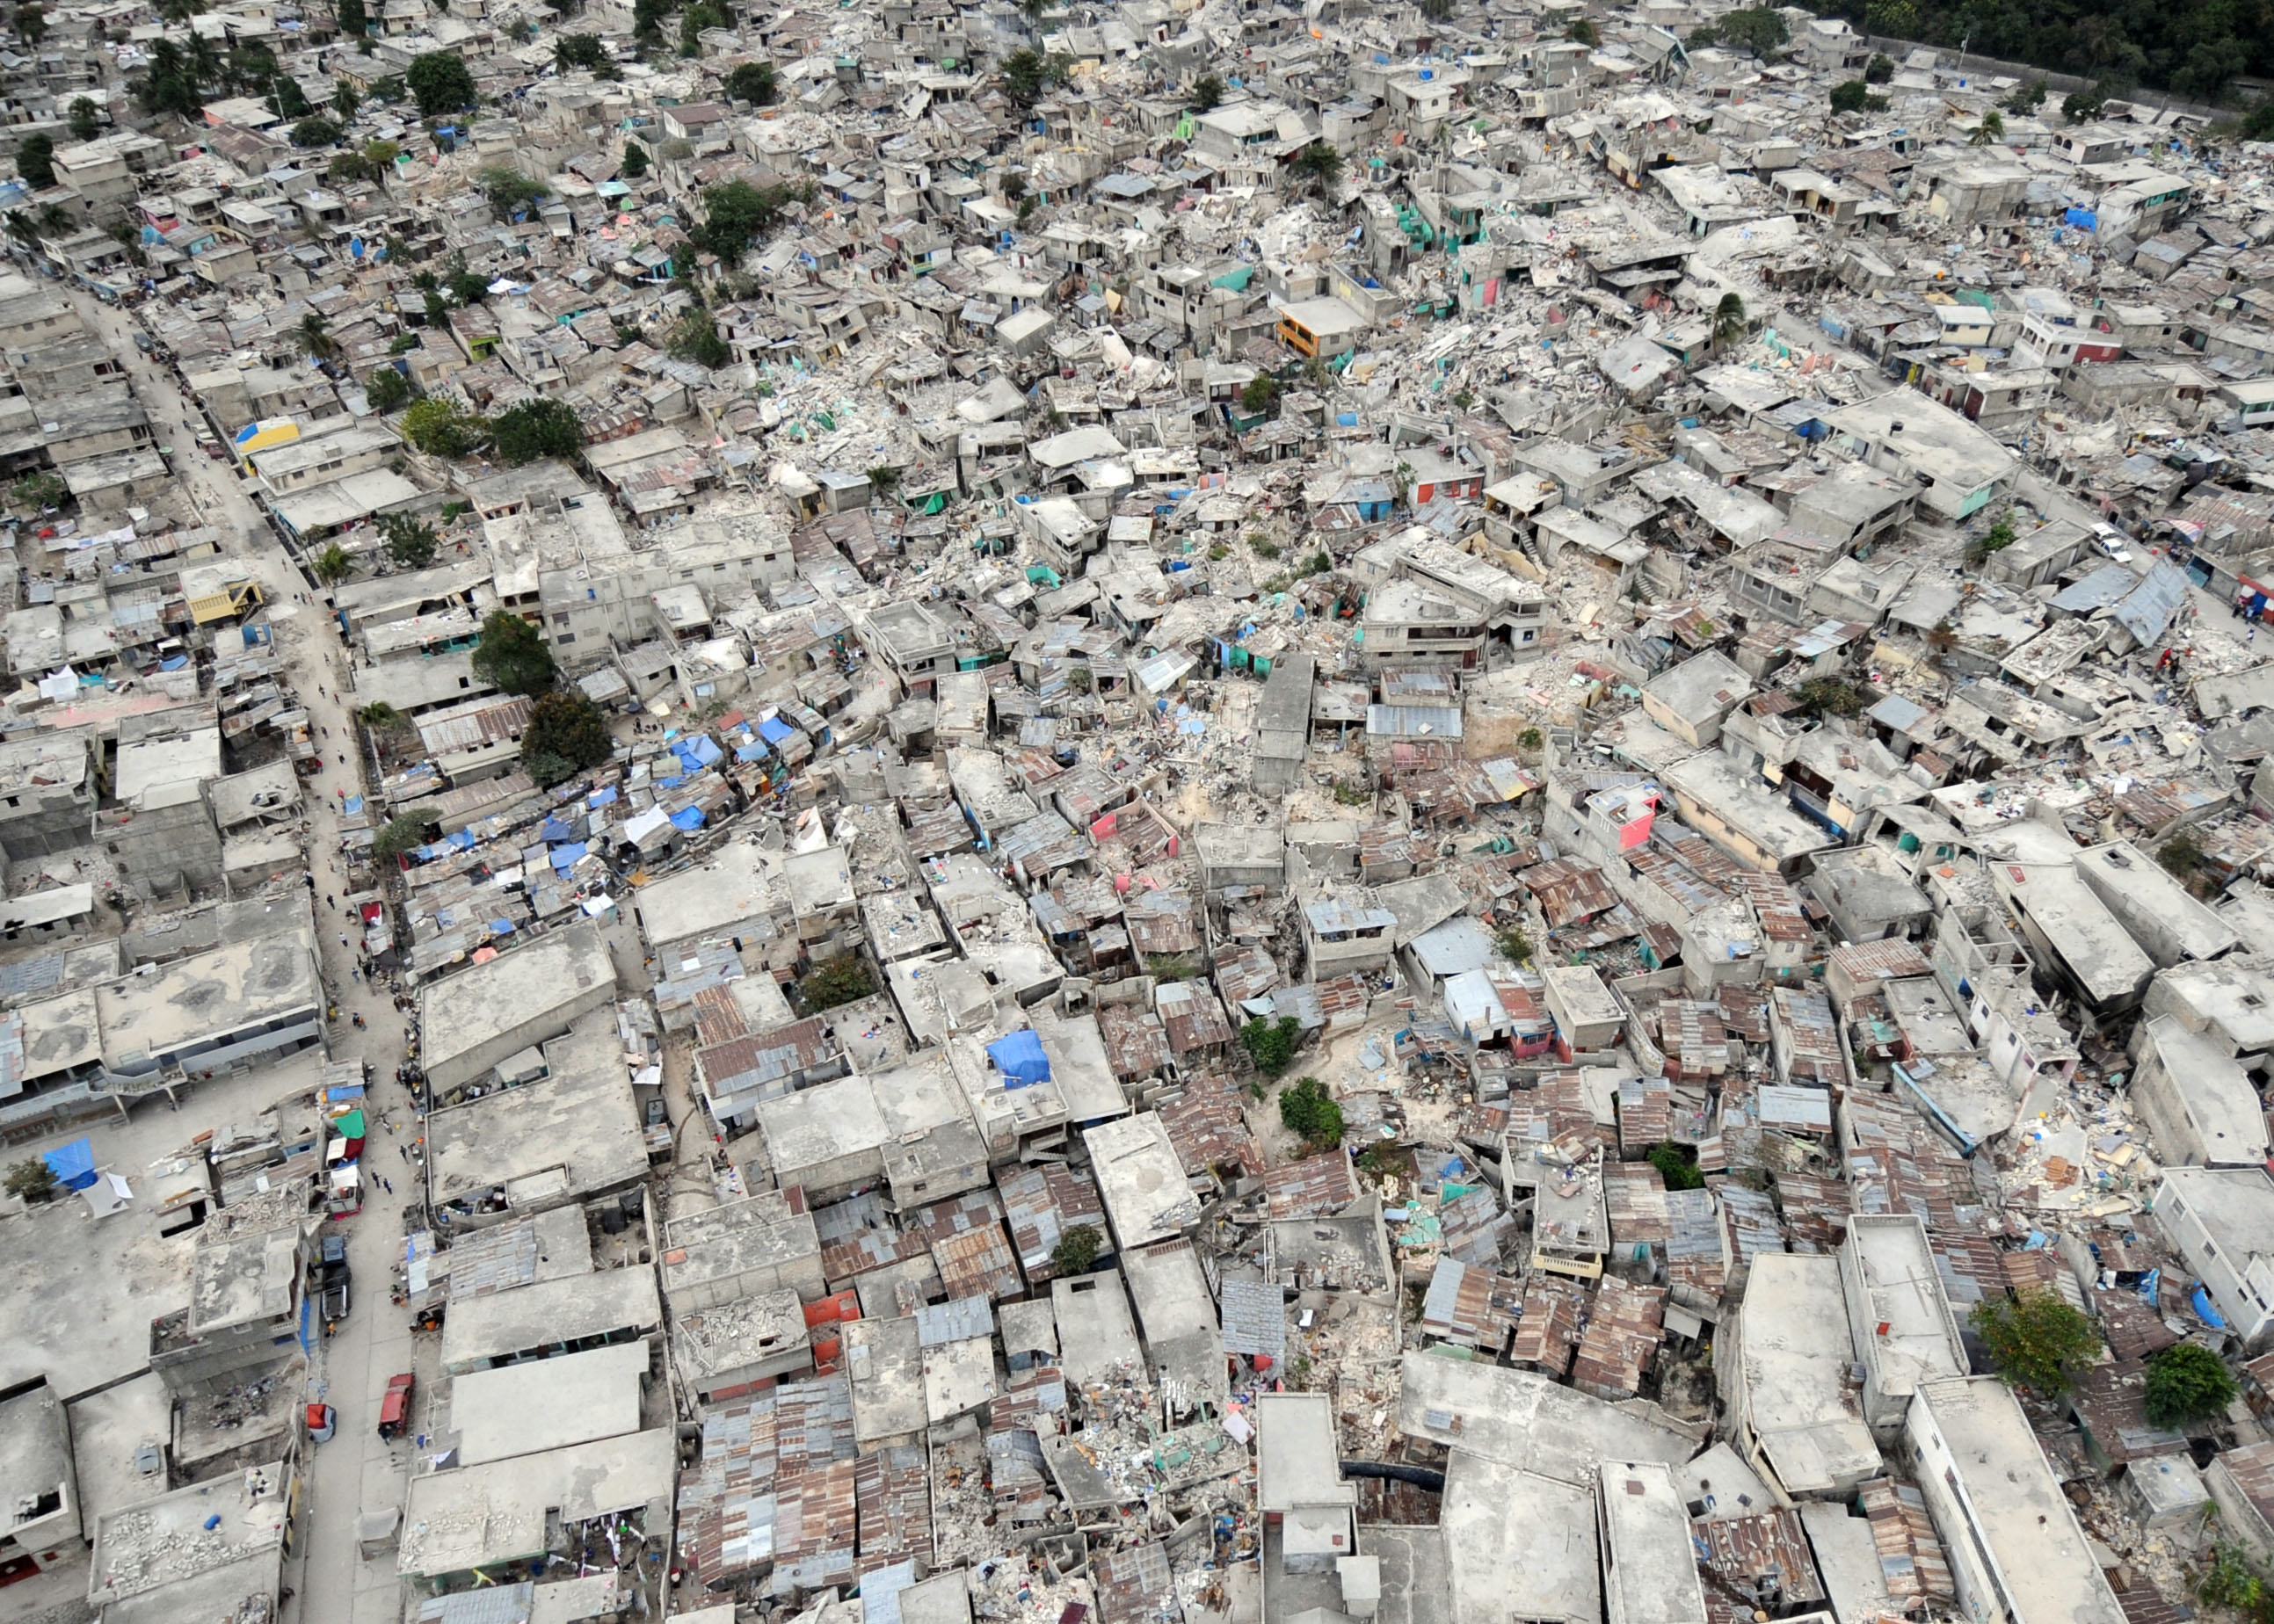 The_earthquake_damage_in_Port-au-Prince_Haiti_is_photographed_Jan._30_2010_during_Operation_Unified_Response_100130-N-HX866-001